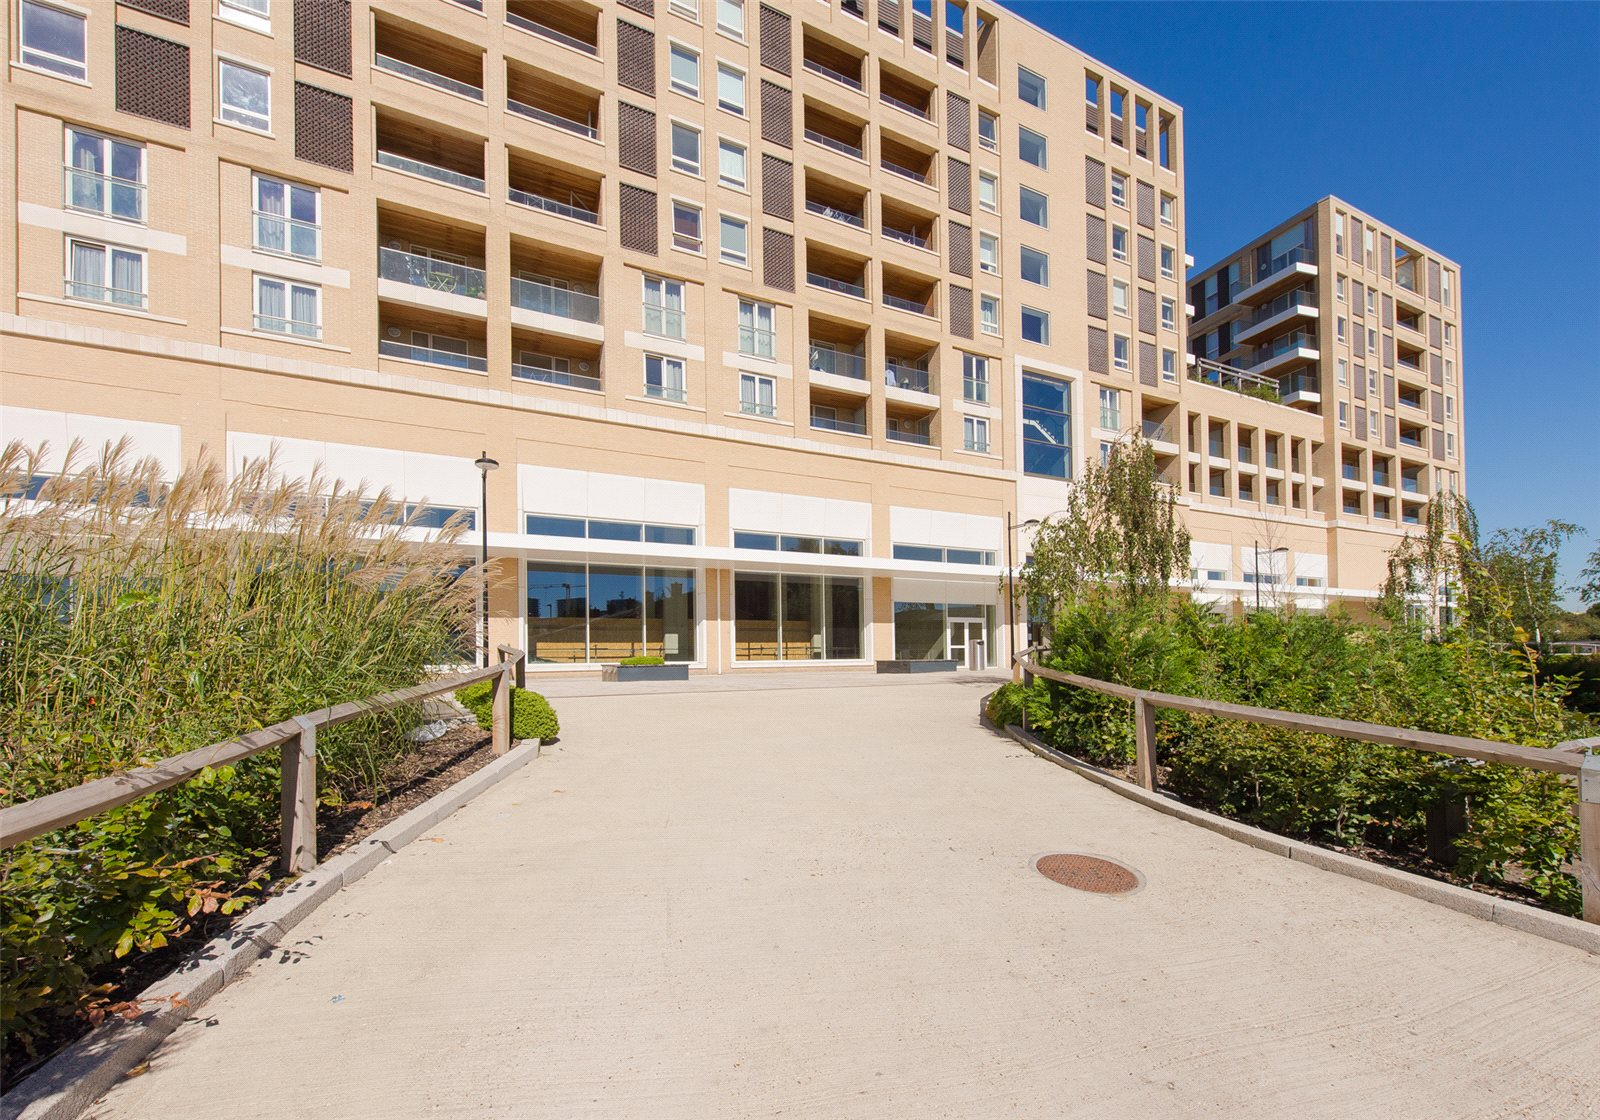 2 Bedrooms Apartment Flat for sale in Discovery Tower, Hallsville Quarter, Canning Town, London, E16